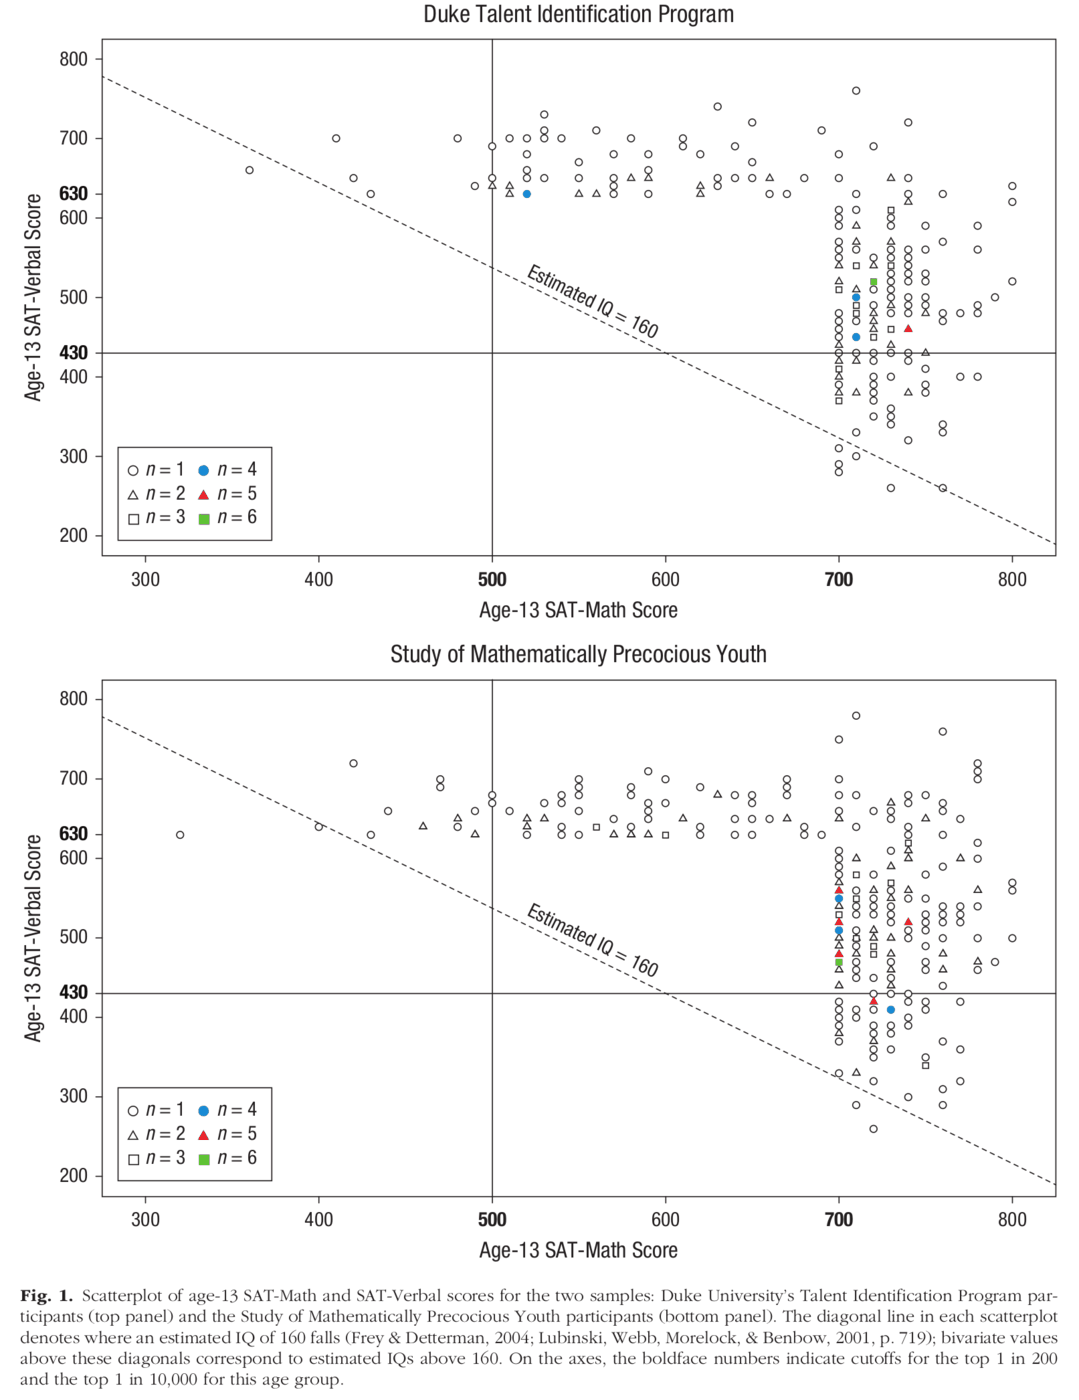 Fig. 1. Scatterplot of age-13 SAT-Math and SAT-Verbal scores for the two samples: Duke University's Talent Identification Program participants (top panel) and the Study of Mathematically Precocious Youth participants (bottom panel). The diagonal line in each scatterplot denotes where an estimated IQ of 160 falls (Frey & Detterman, 2004; Lubinski, Webb, Morelock, & Benbow, 2001, p. 719); bivariate values above these diagonals correspond to estimated IQs above 160. On the axes, the boldface numbers indicate cutoffs for the top 1 in 200 and the top 1 in 10,000 for this age group.